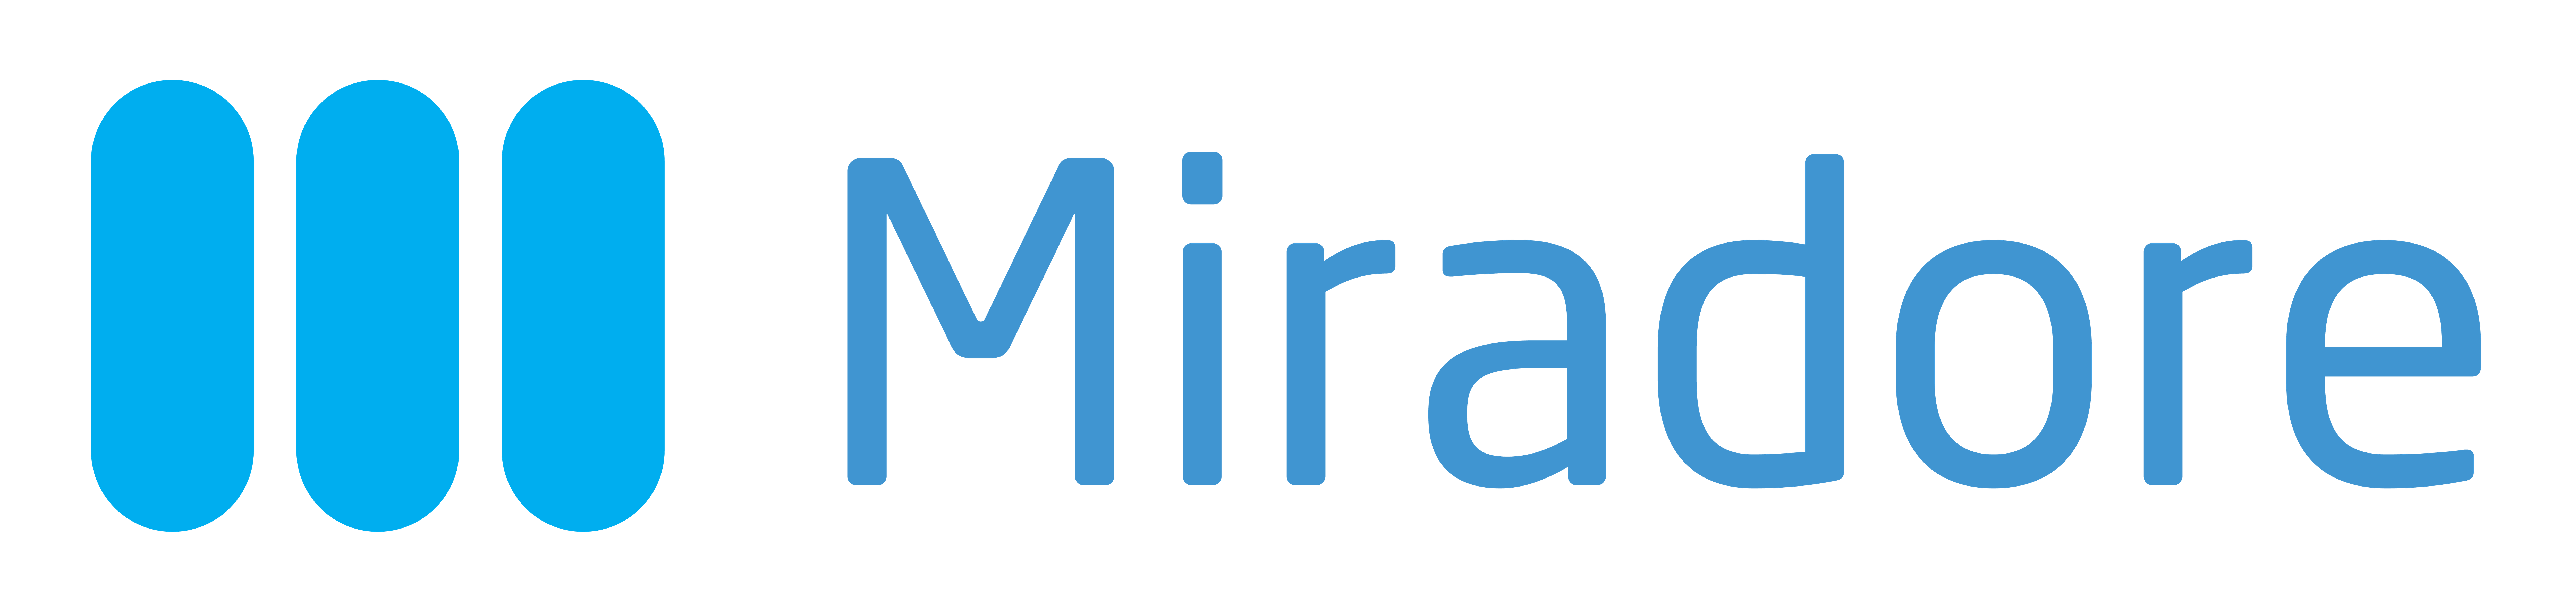 Miradore-Logo_no-slogan-300dpi-color.png